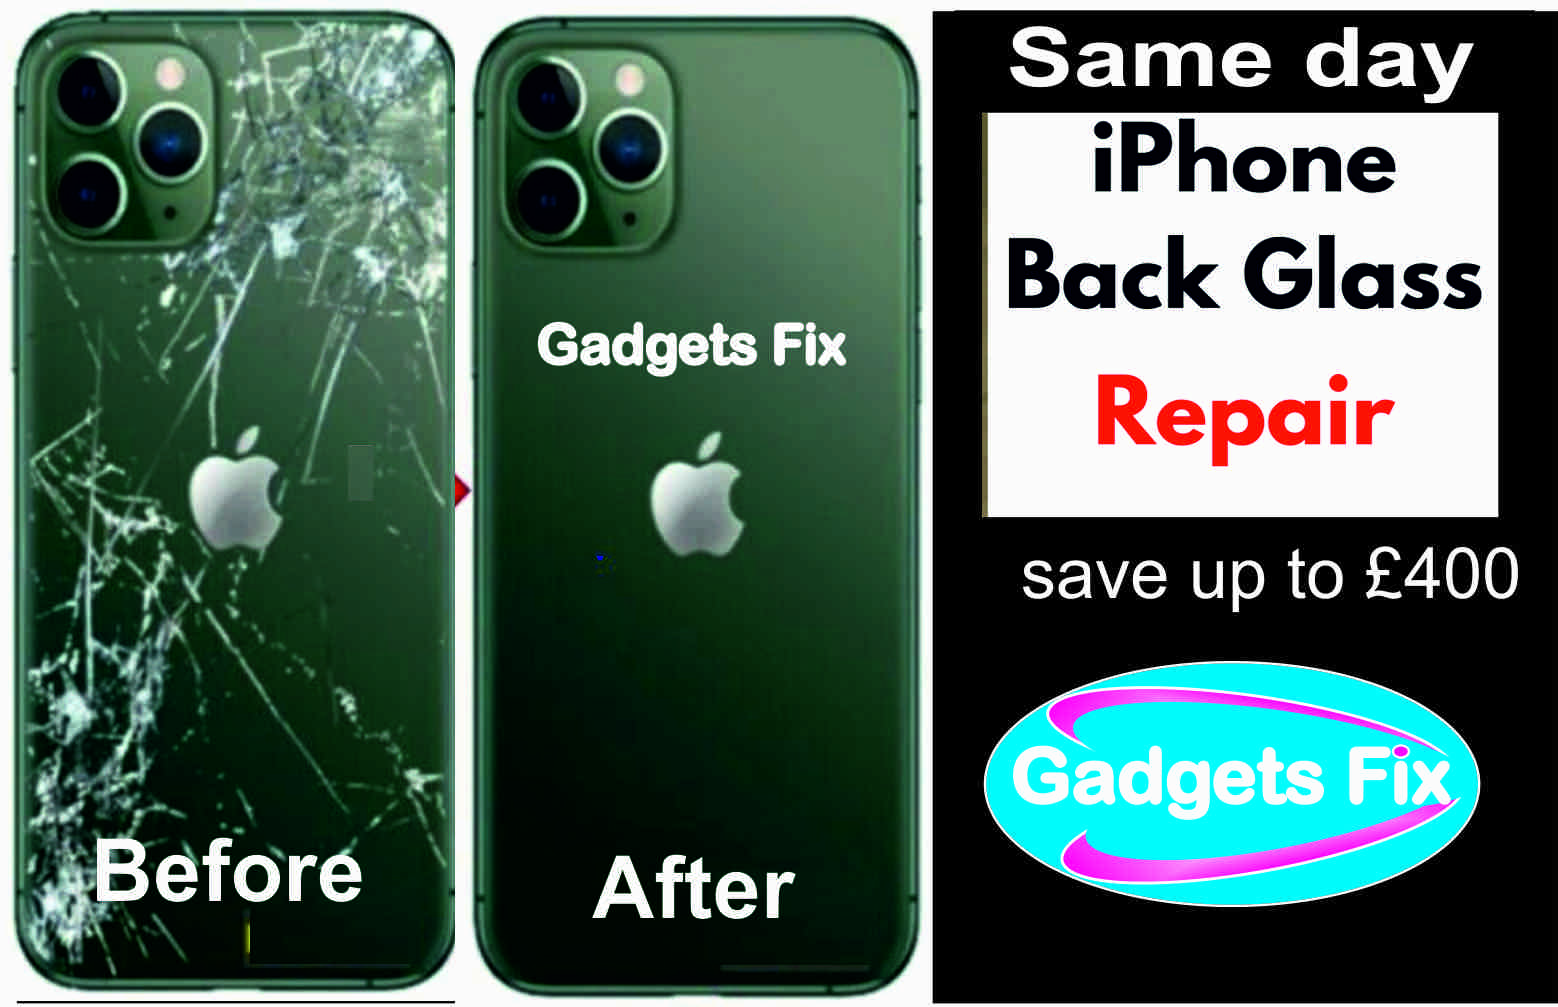 gadgets fix repairs glass back screen issues click and collect Iphones smart phones laptops alwoodley moortown beeston and Burley. we deliver to you trade and repair phones laptops.,jpg